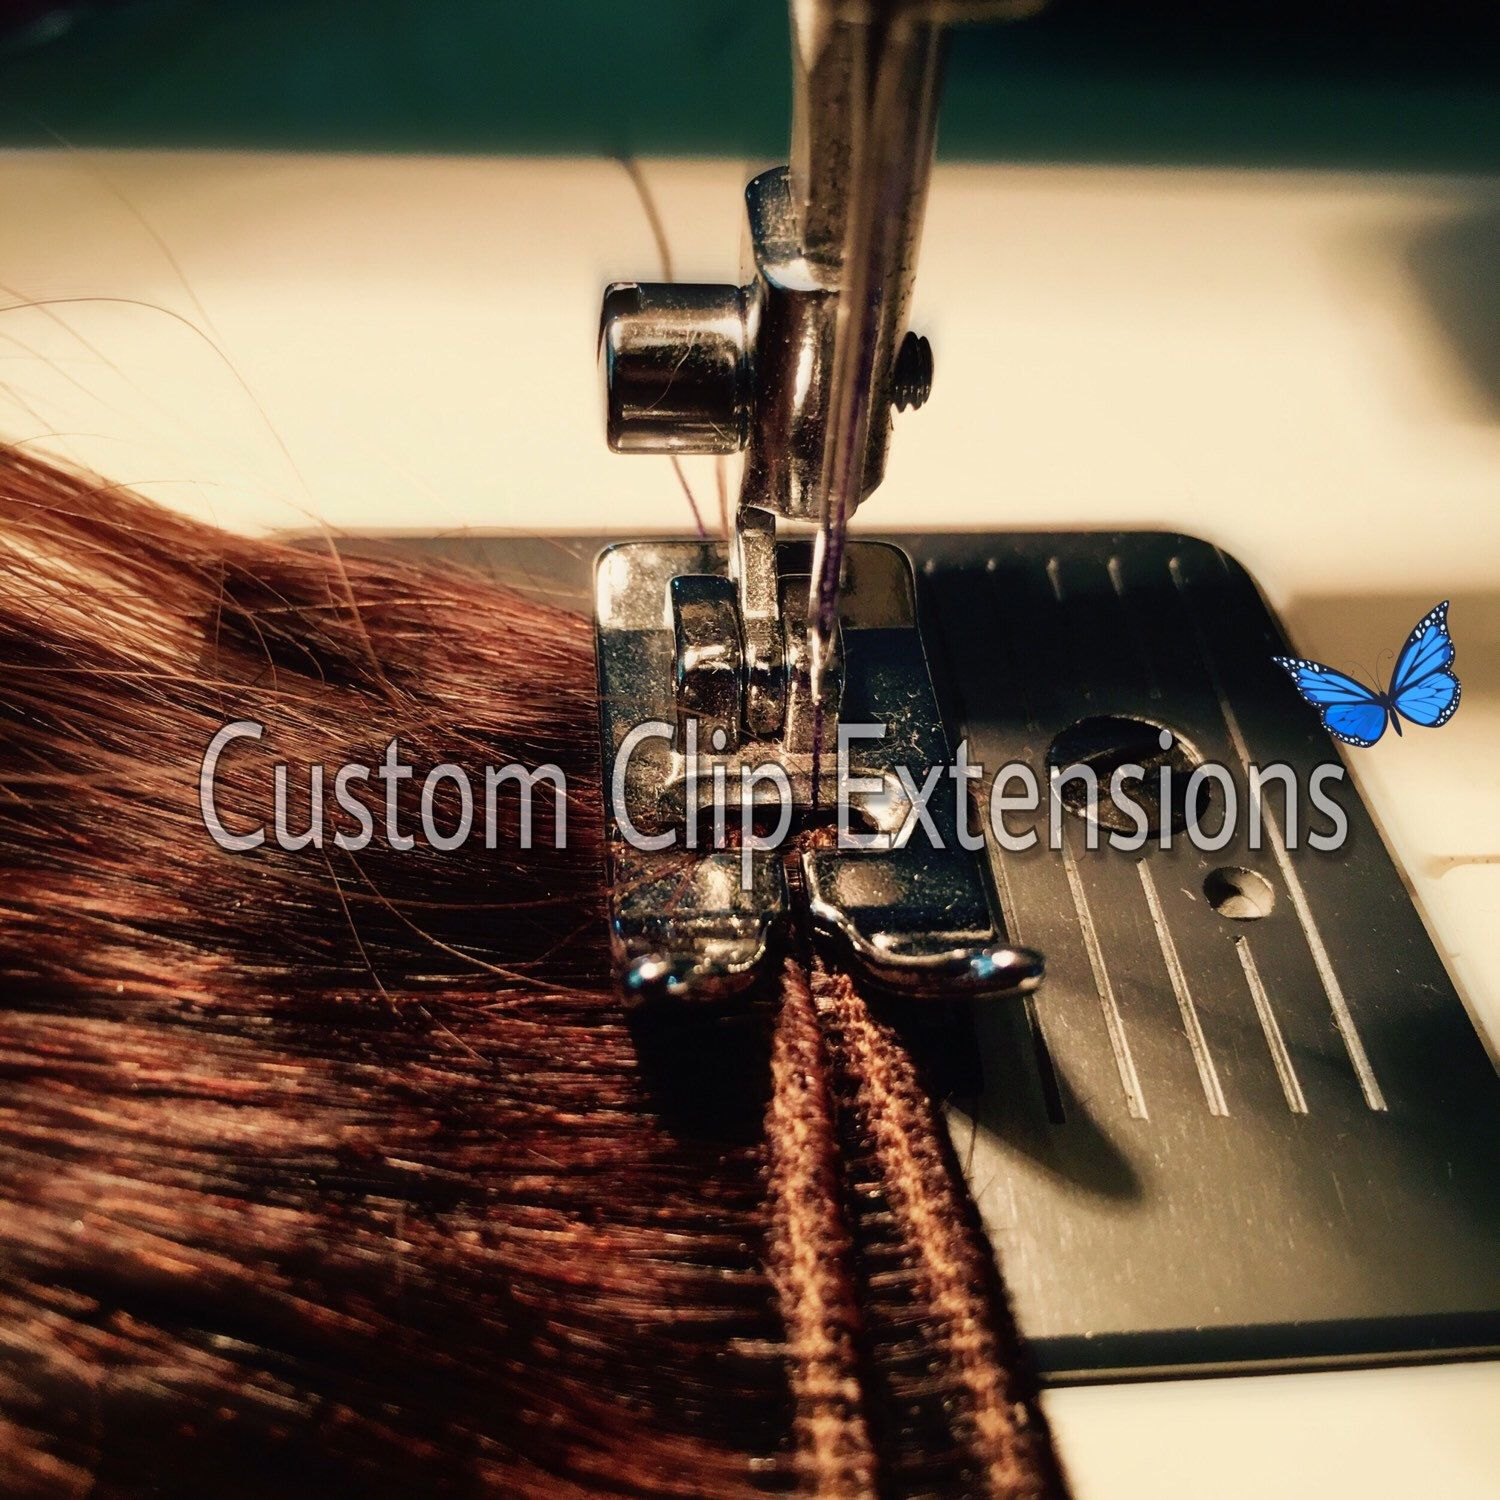 The hair used for these extensions is 100% human hair, high-quality, incredibly. They can be curled, straightened, etc. To use as full sets of extensions or to add volume. If you are interested in CUSTOM colors, please contact me! 💌I'm here to help!🎀🦄